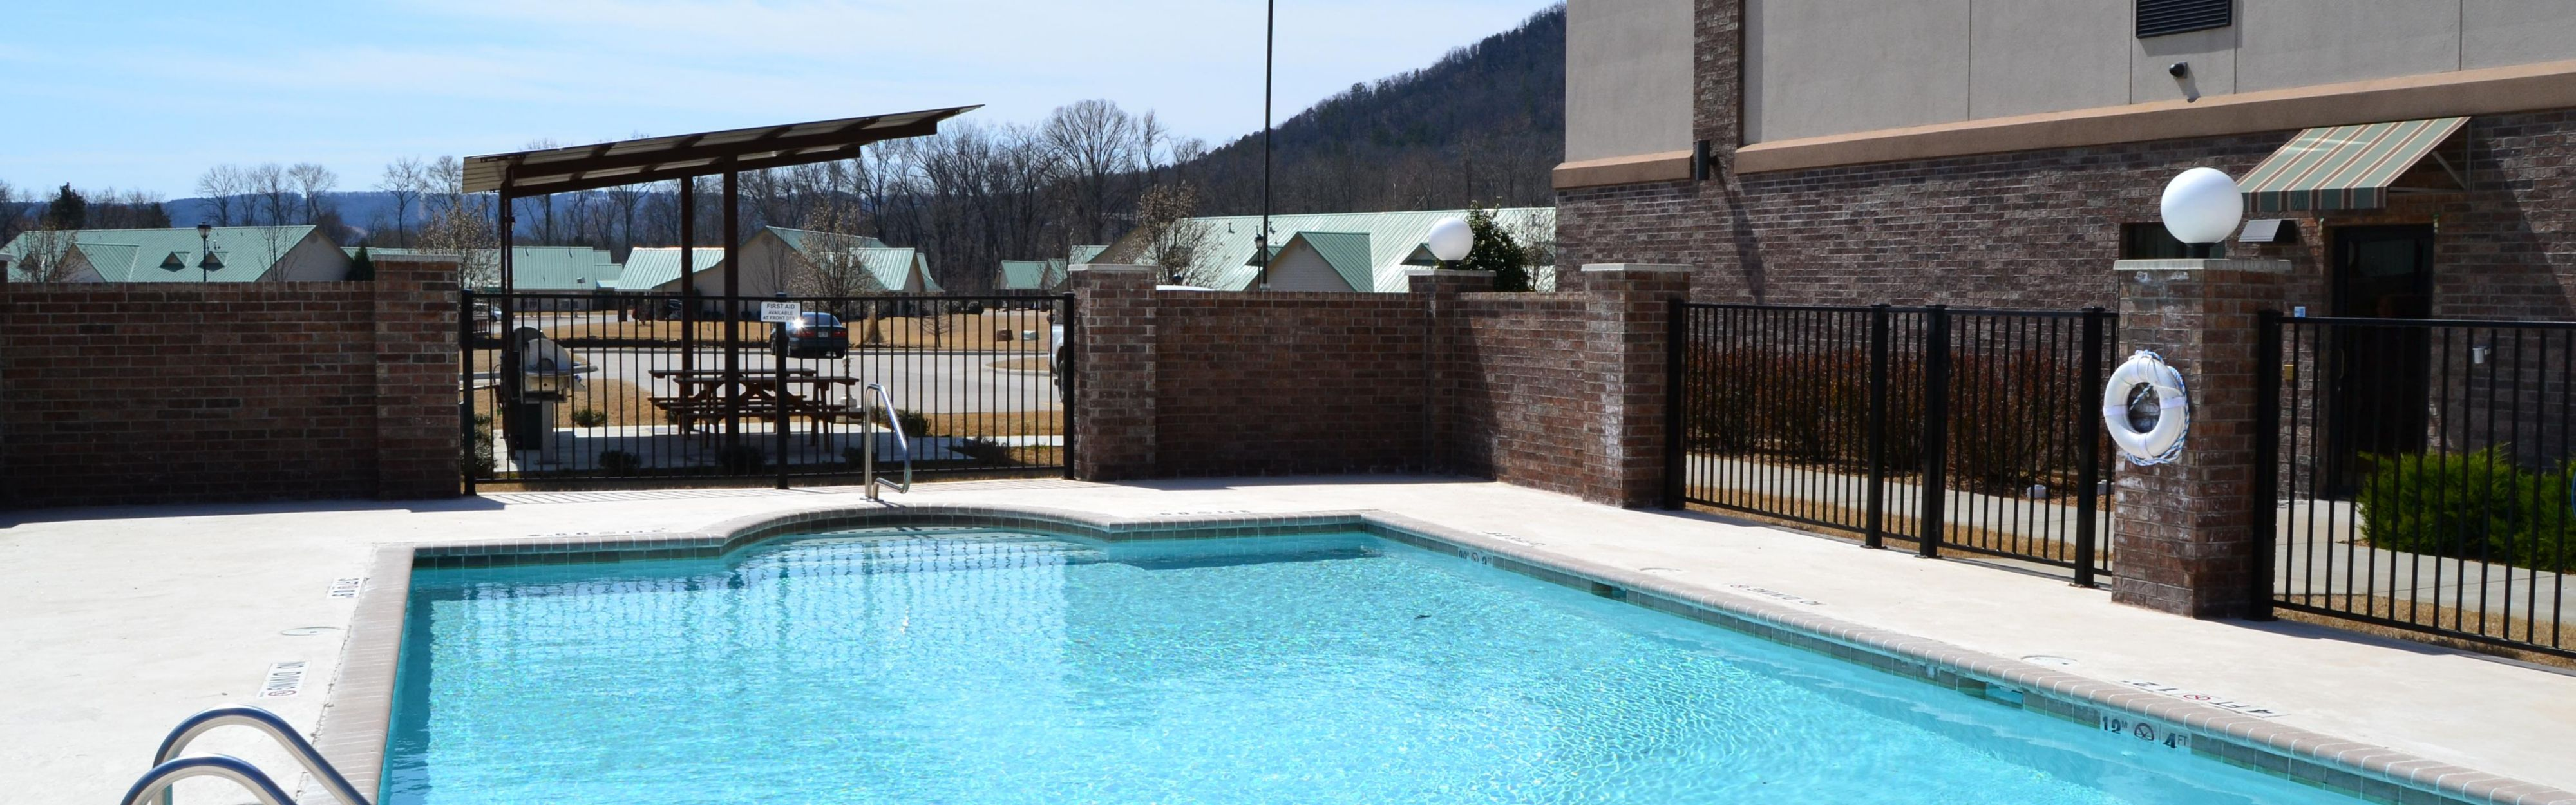 Holiday Inn Express & Suites Heber Springs image 2